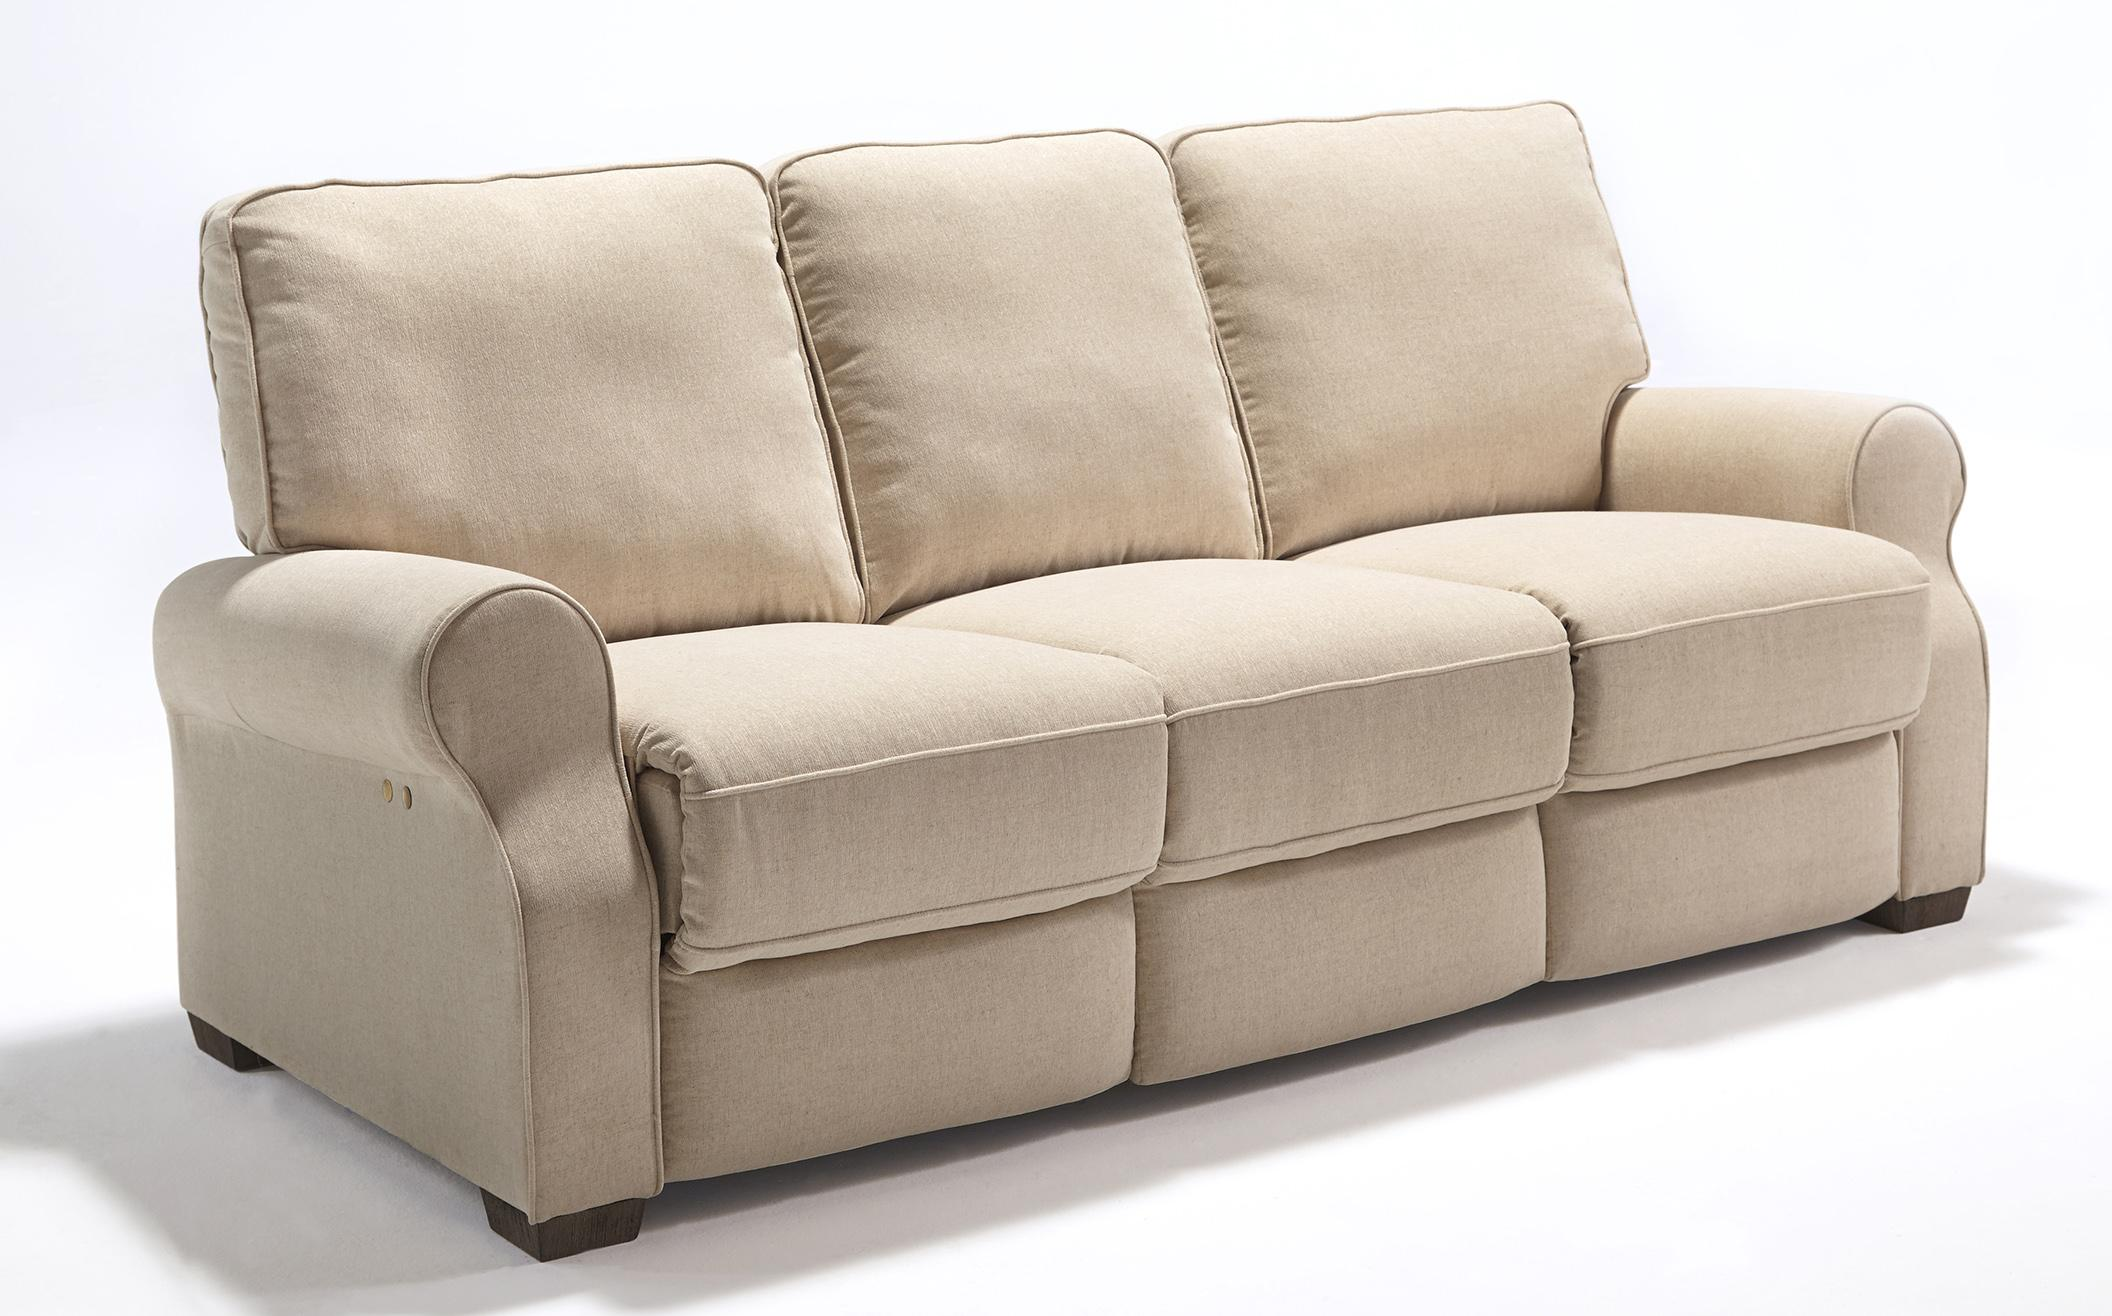 Traditional Power Reclining Sofa with High Legs by Best Home